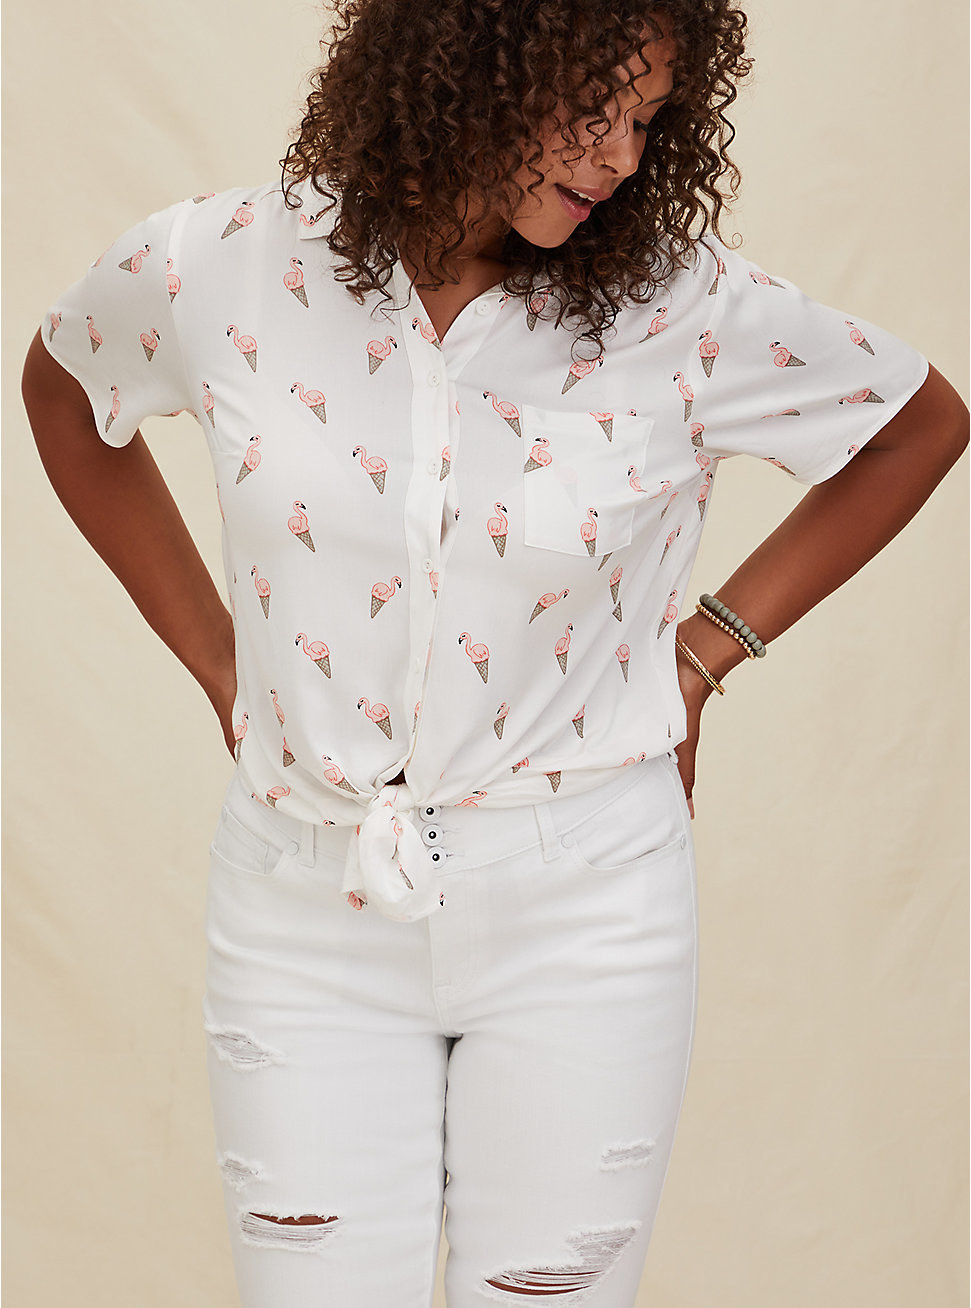 Model wearing the collared button-down shirt in white tied in the front  with a pocket on the left chest and a print of flamingos in ice cream cones all over it